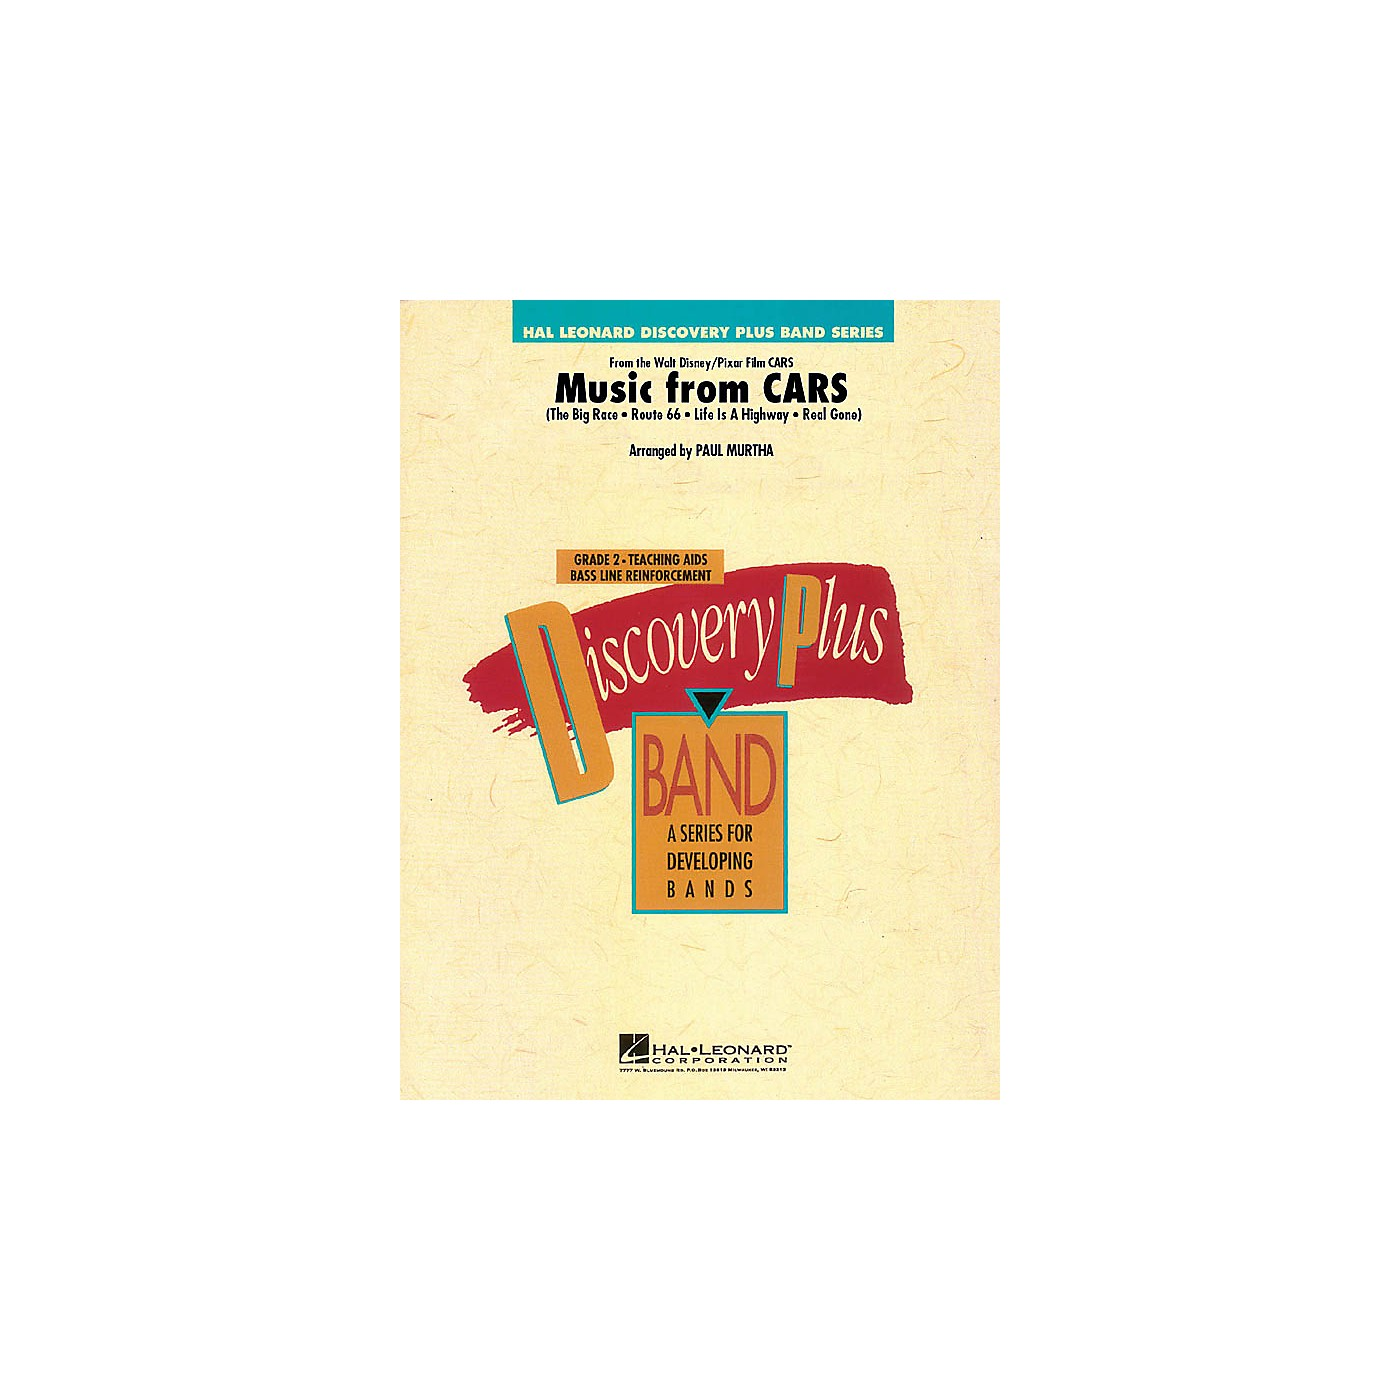 Hal Leonard Music from Cars - Discovery Plus Concert Band Series Level 2 arranged by Paul Murtha thumbnail